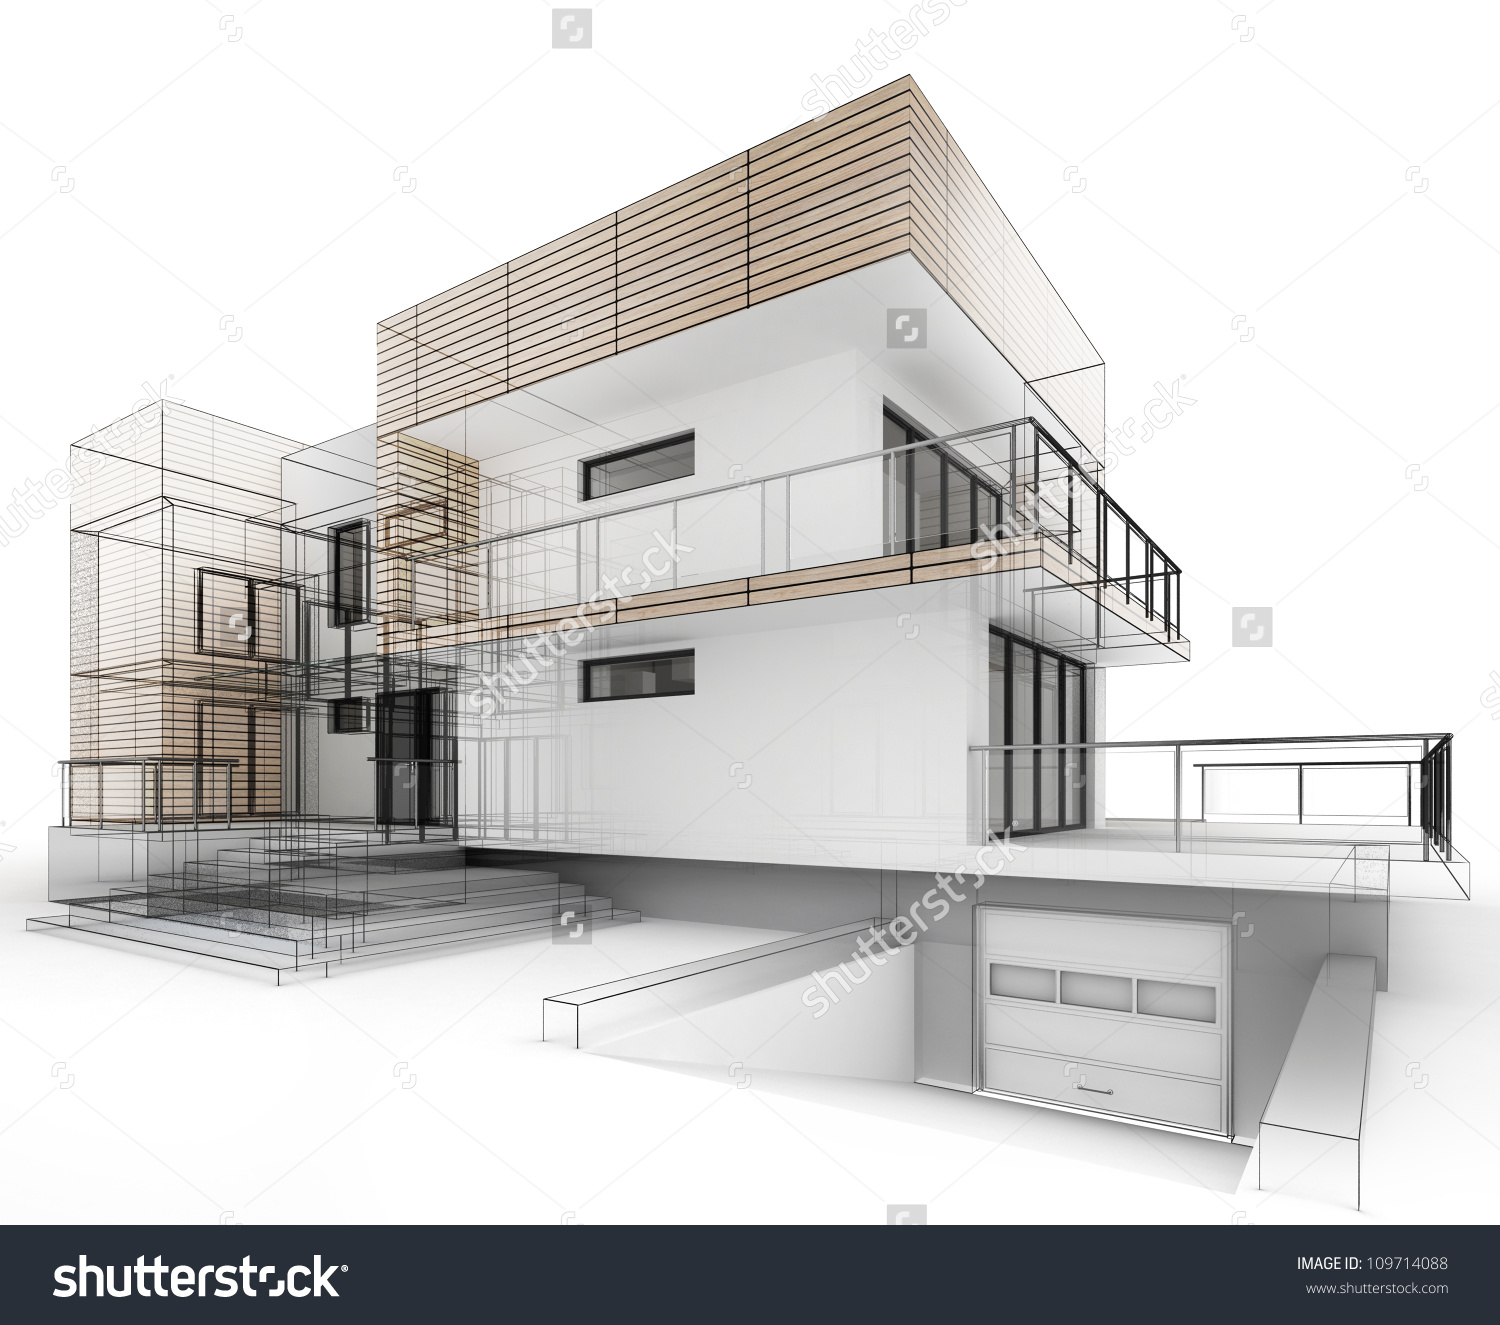 Homes Drawing at GetDrawings.com | Free for personal use Homes ...